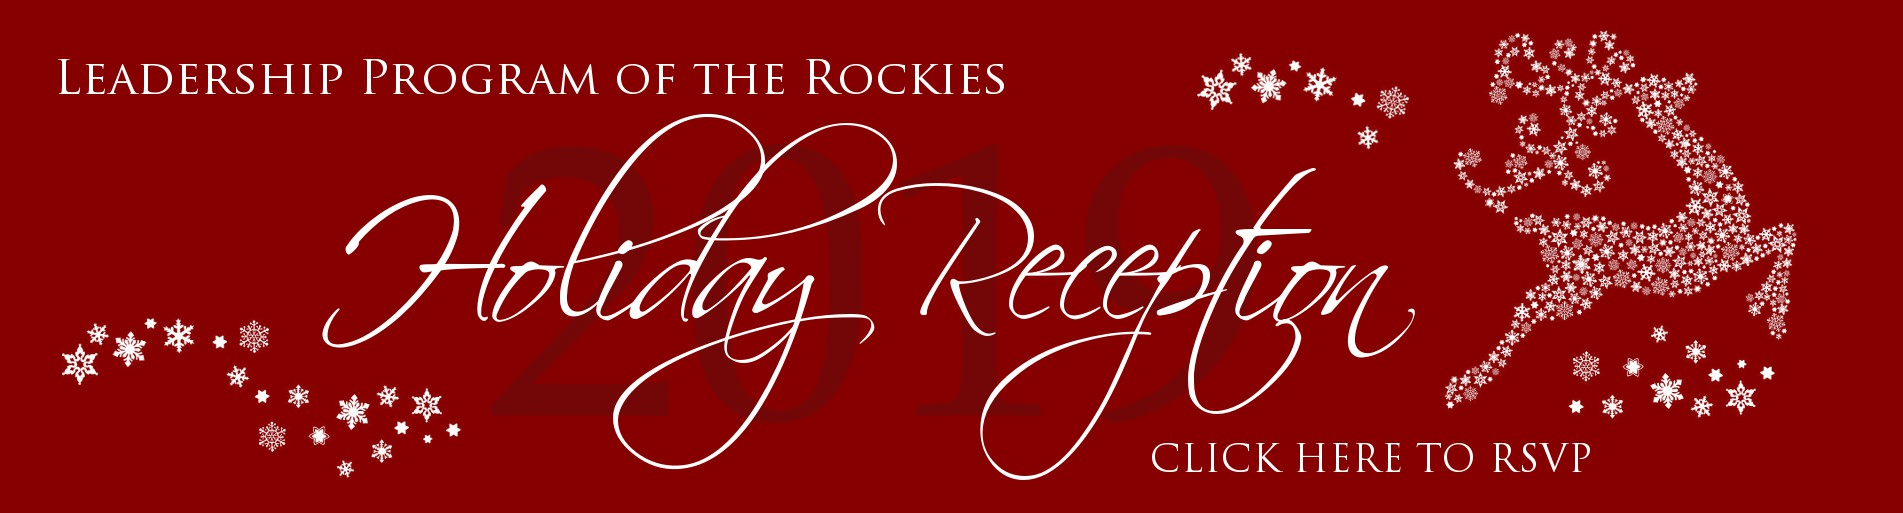 2019 Holiday Reception RSVP